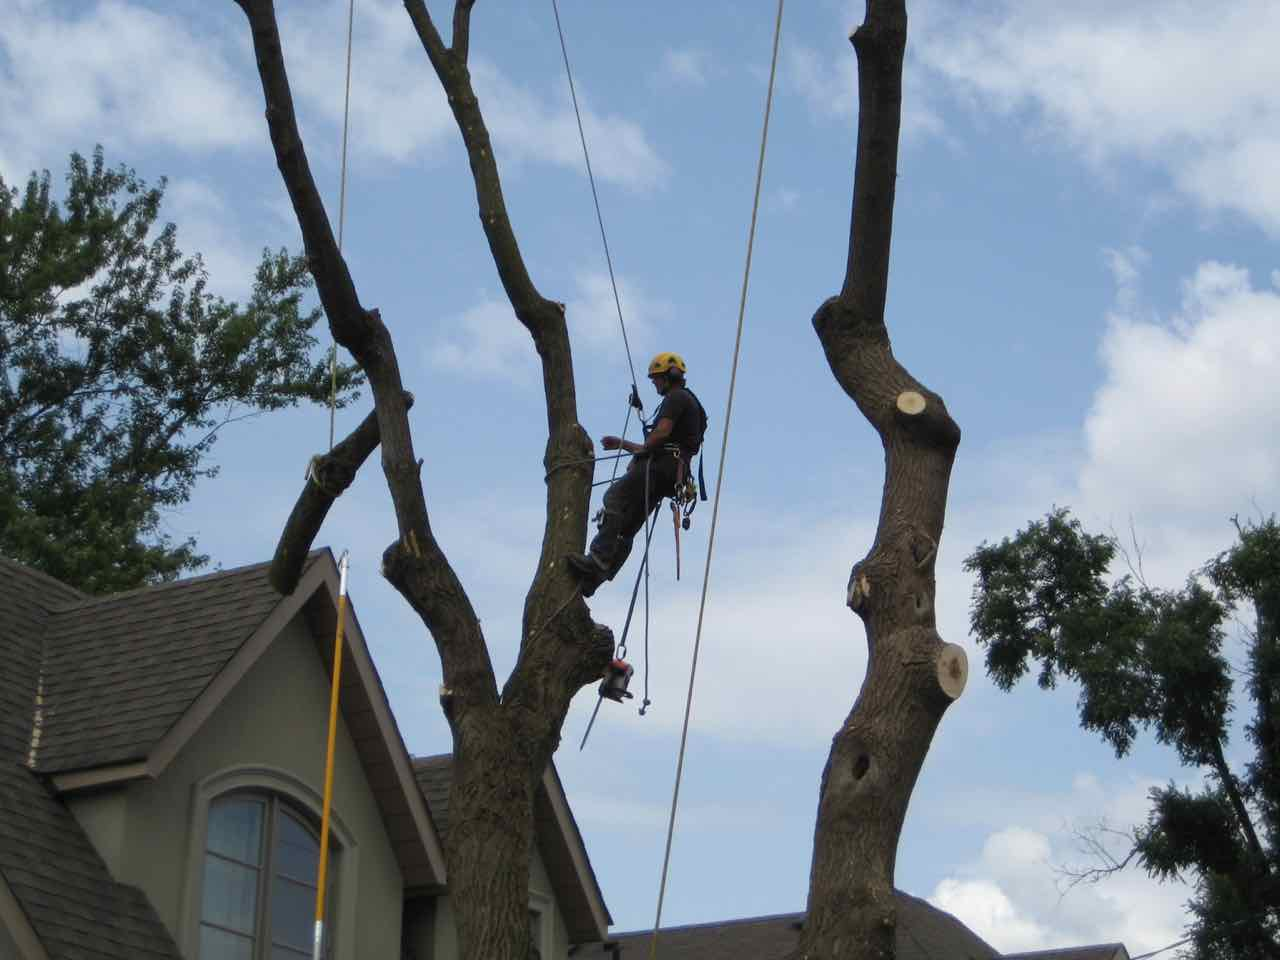 Isa arborist climber cuts down part of tall urban tree